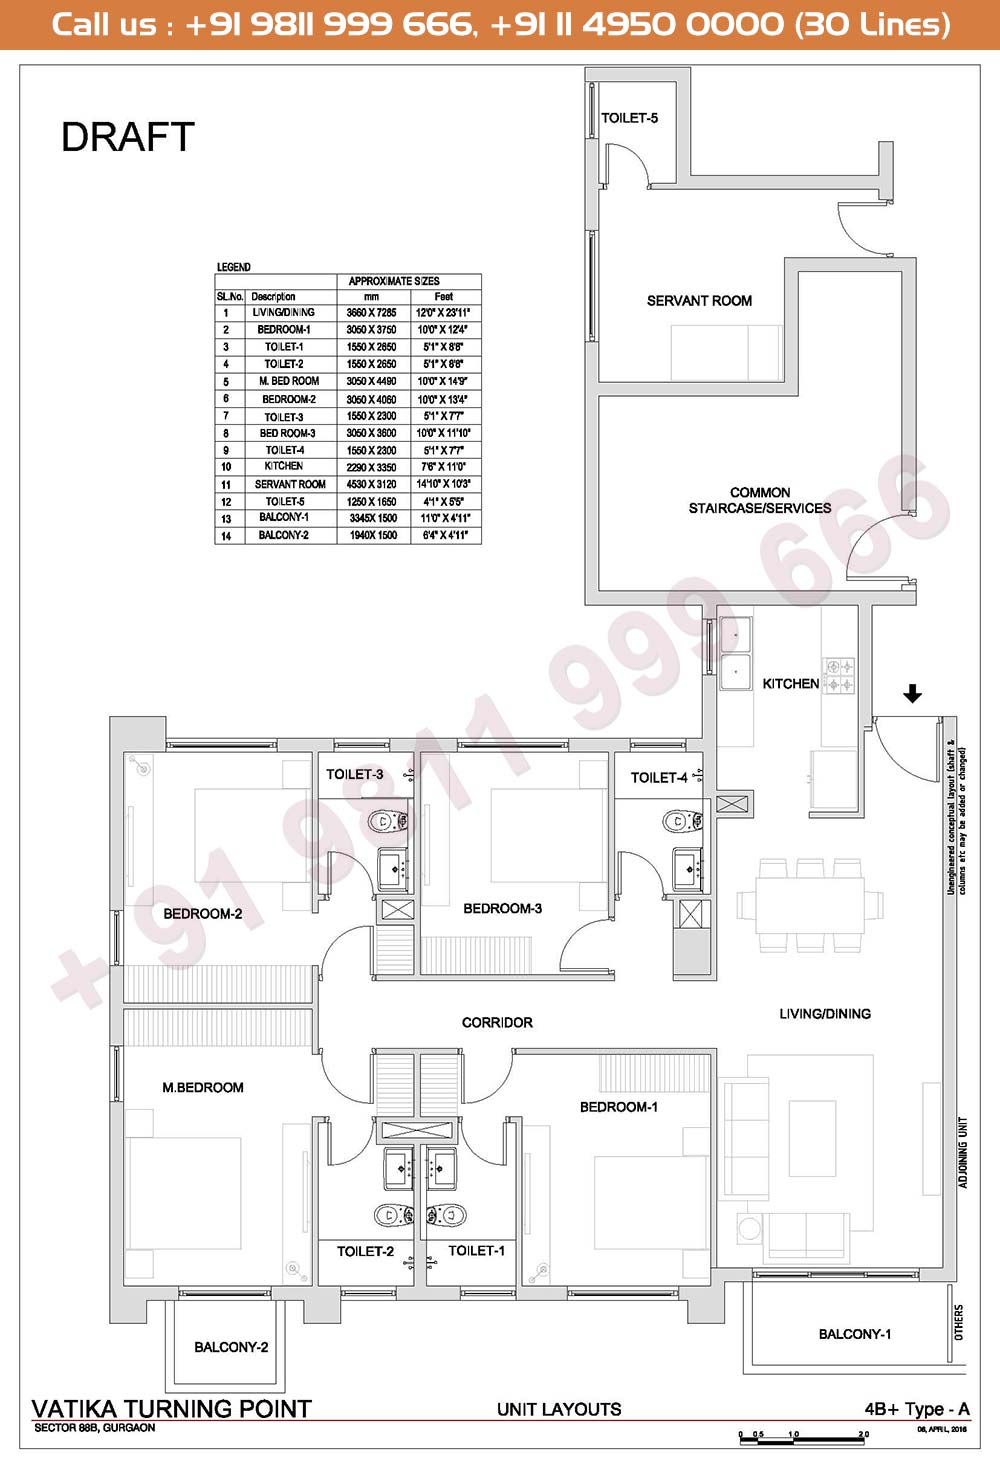 4 BHK + Type A